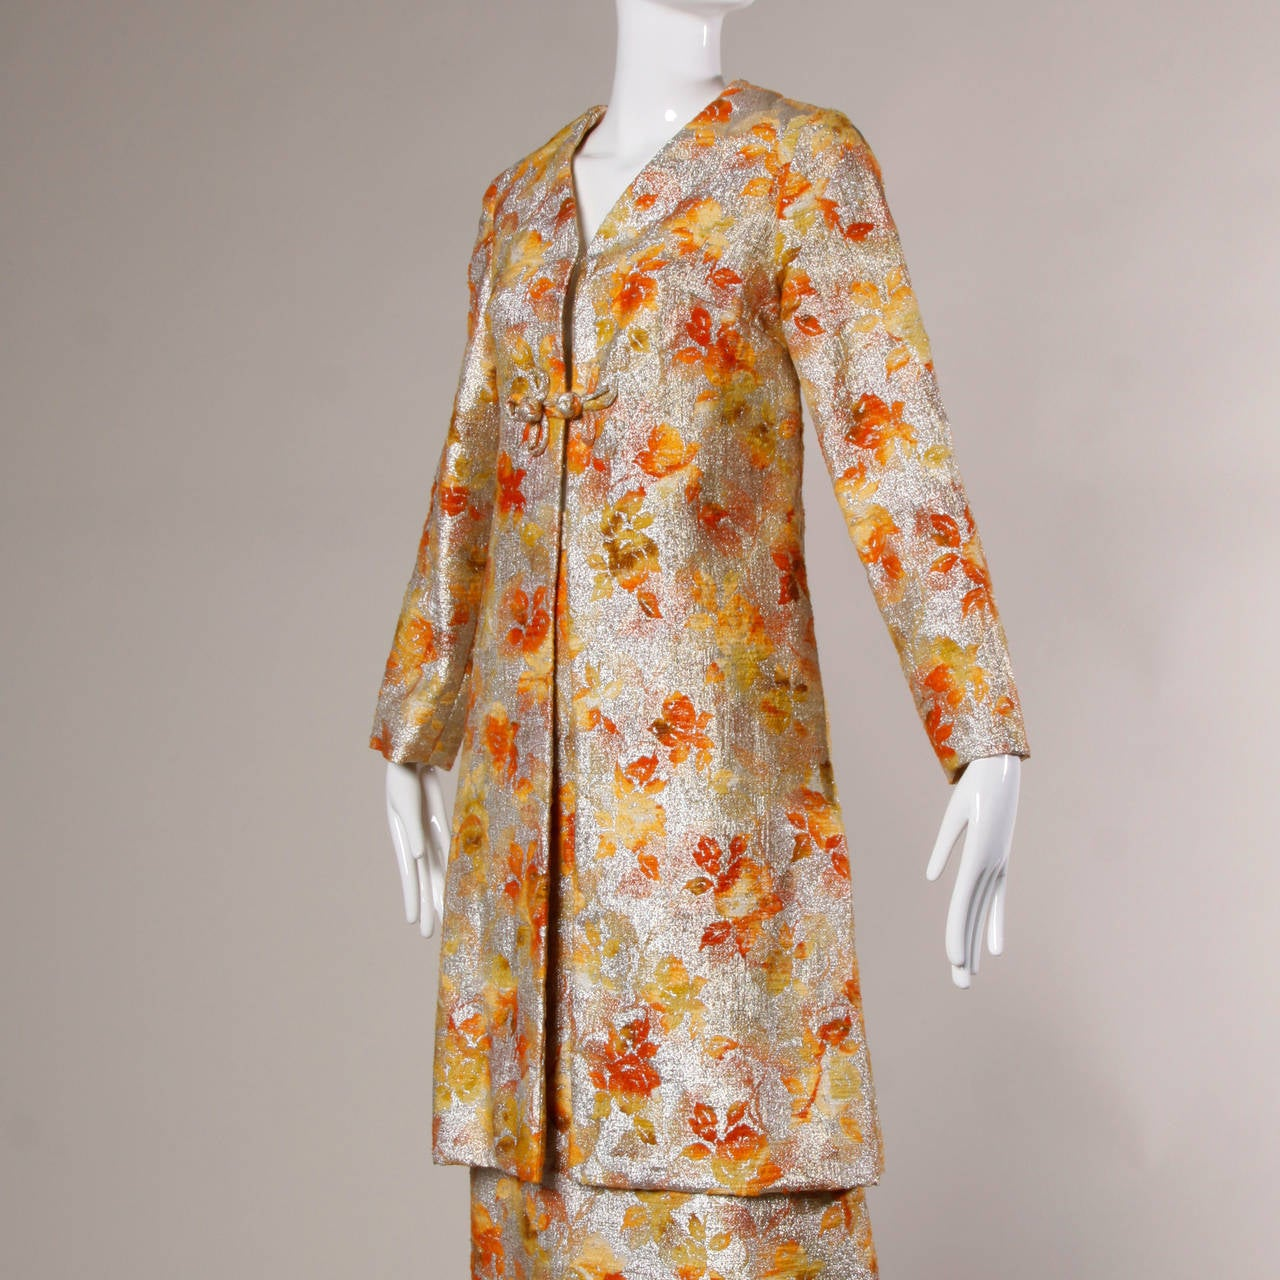 1960s Vintage Metallic Brocade Ombre Coat 3